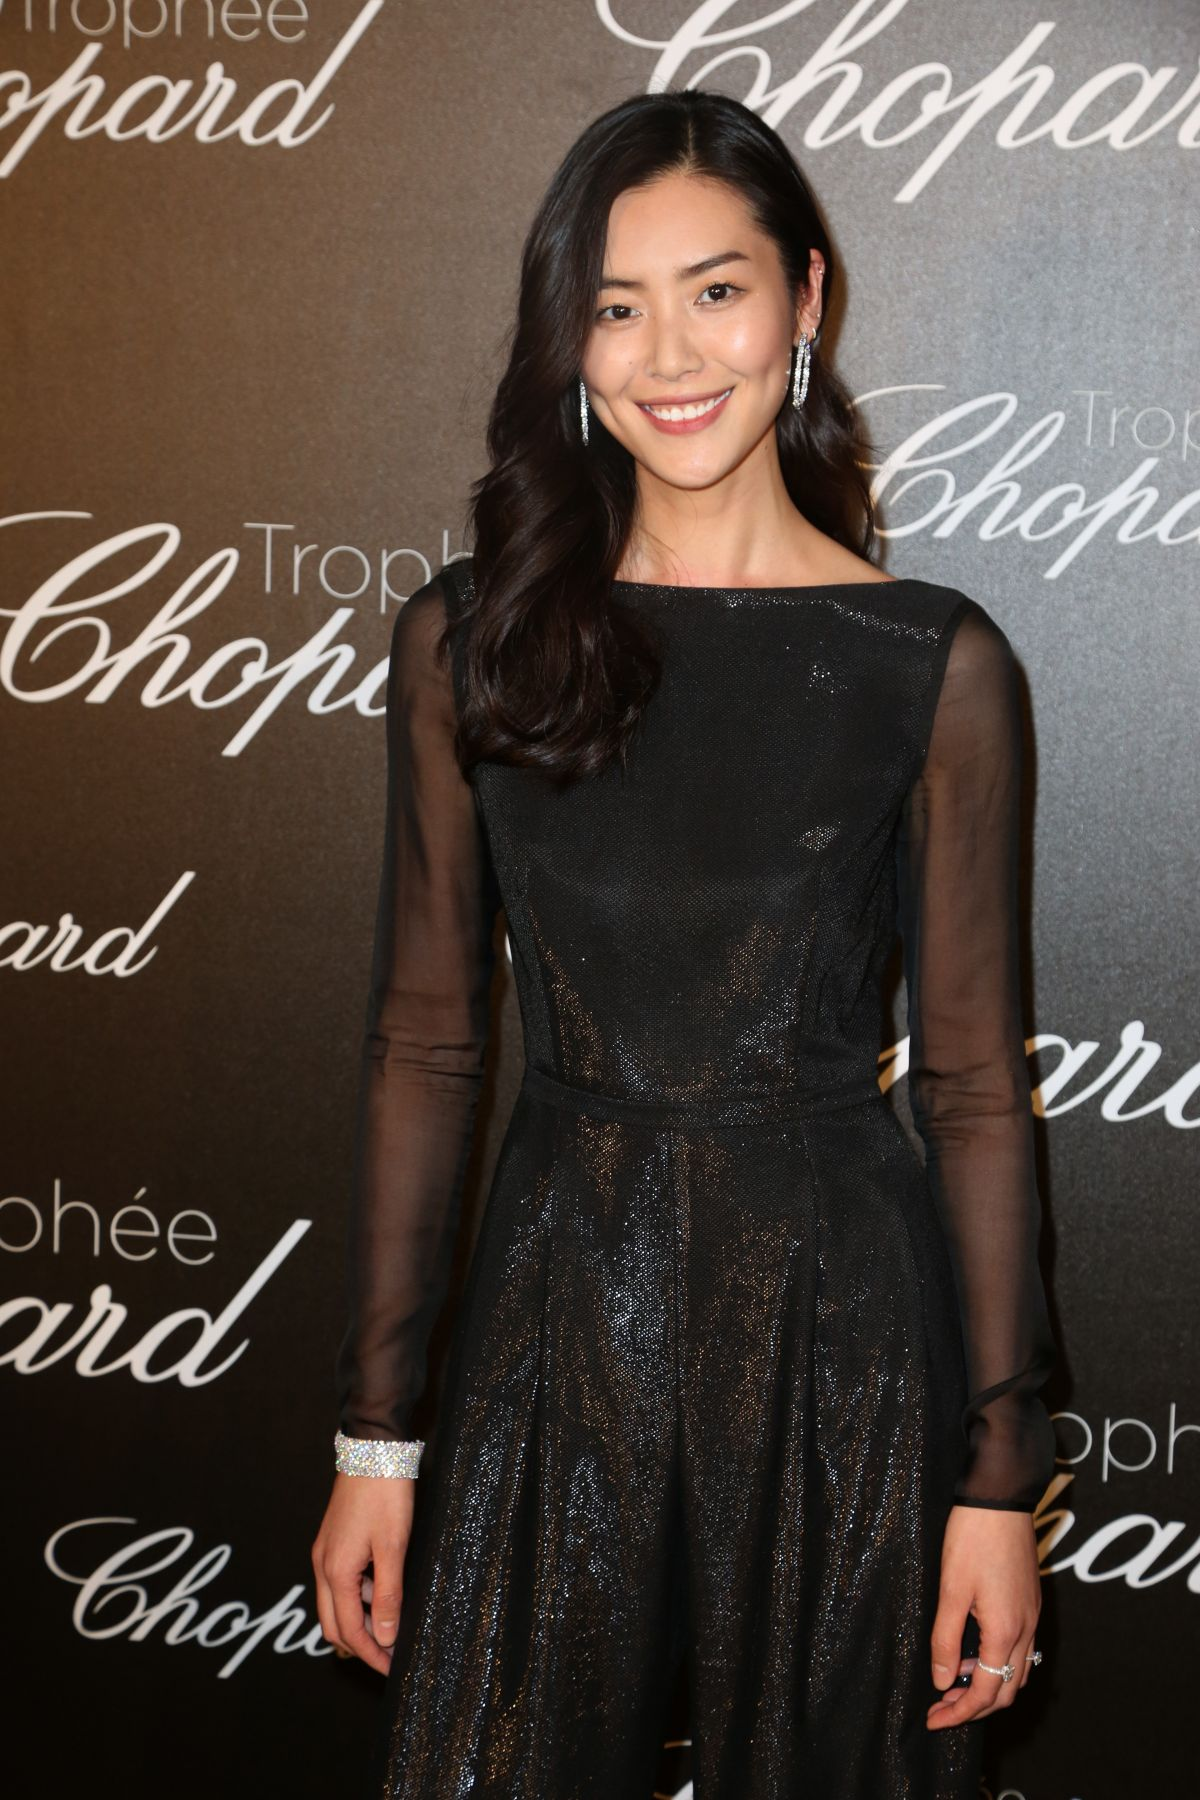 LIU WEN at Chopard Trophy Event in Cannes 05/22/2017